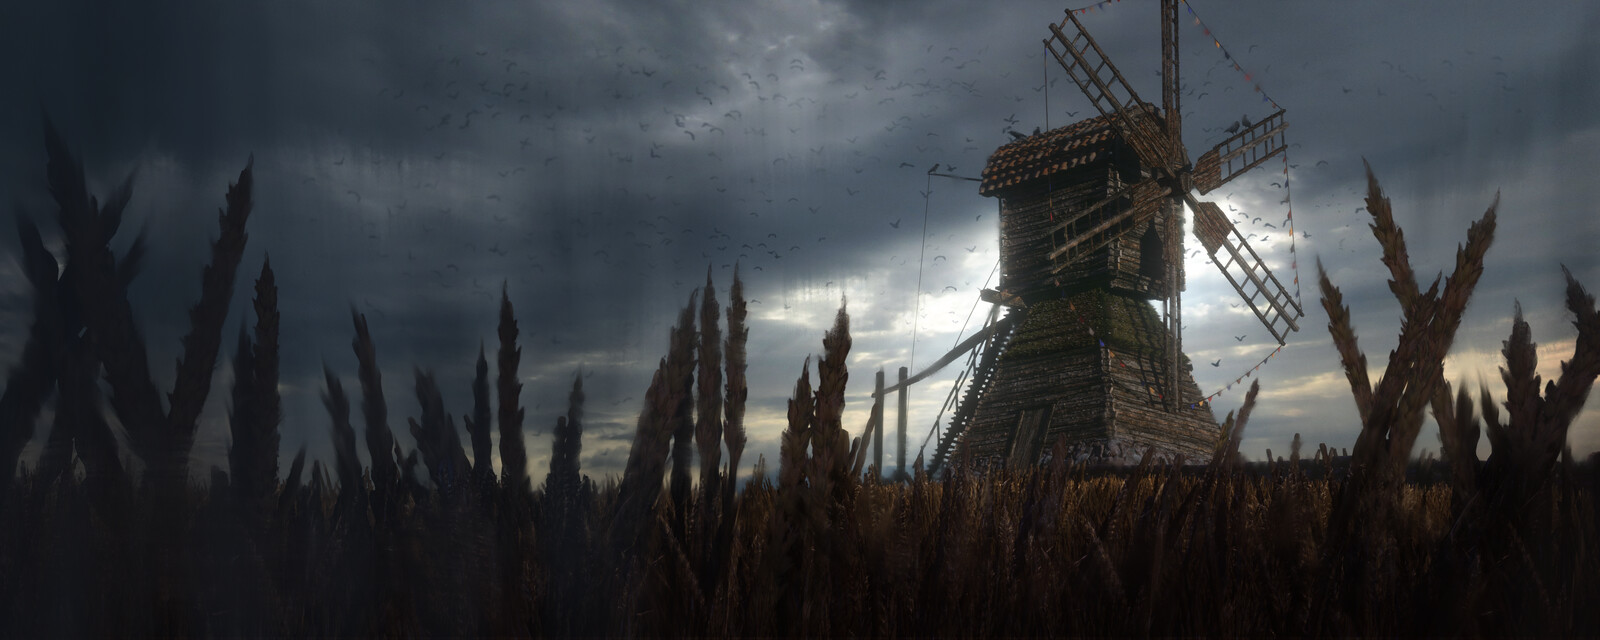 Windmill in Stormy Weather